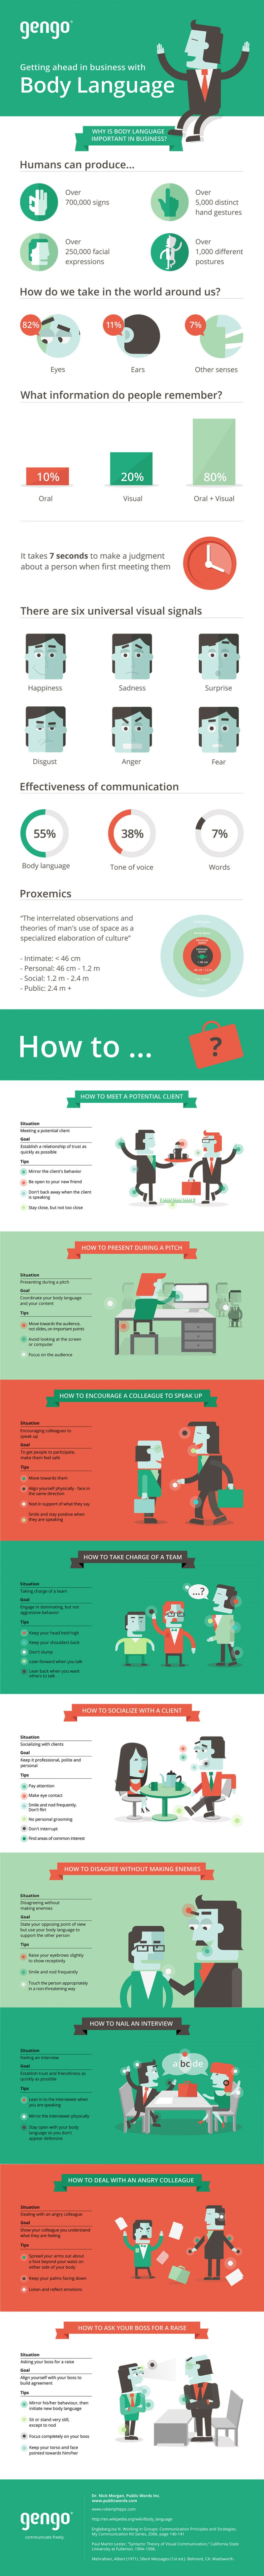 Infographic - Body Language In Business